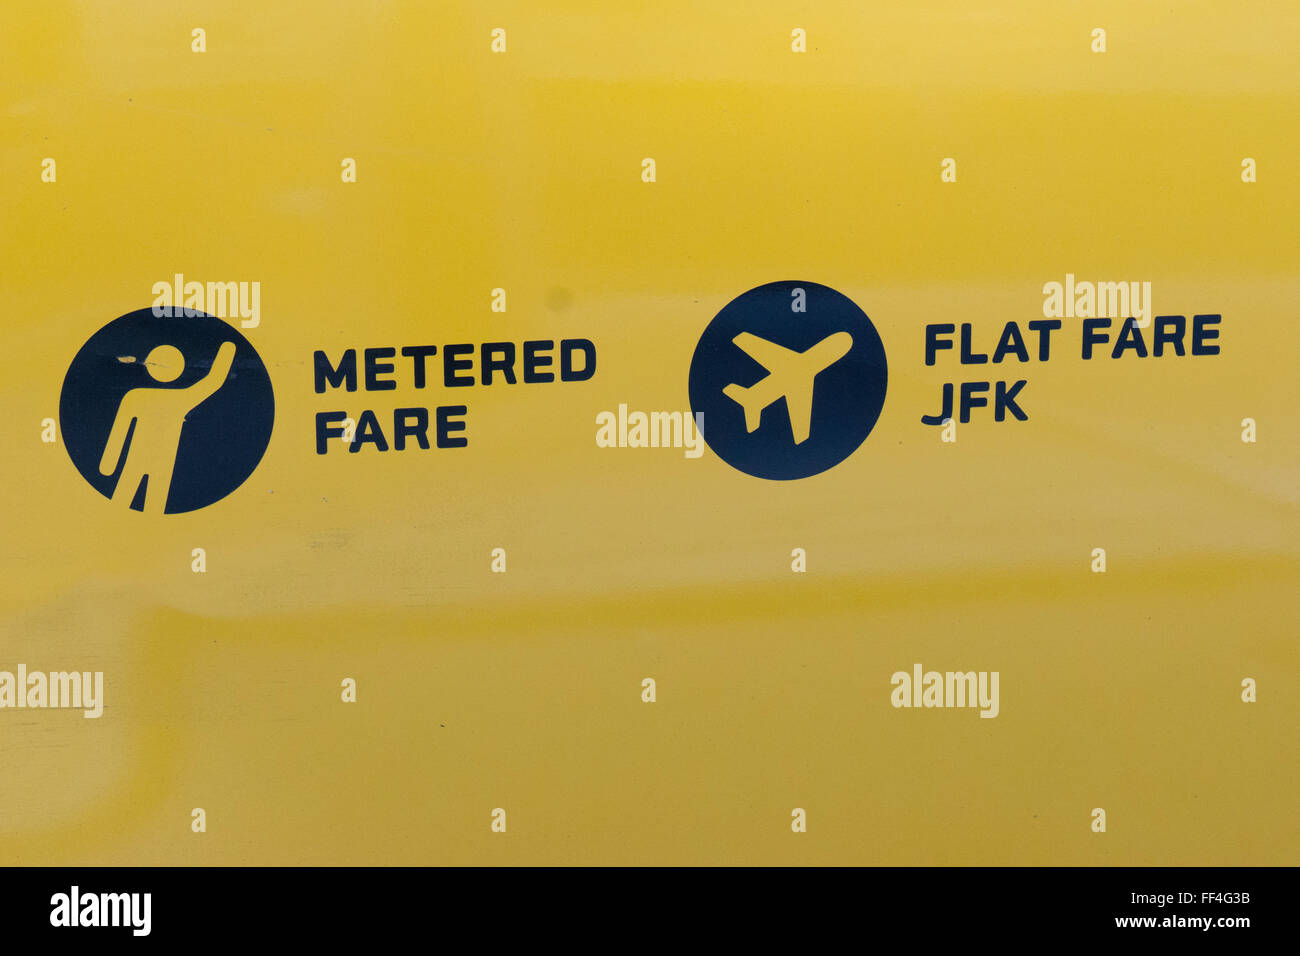 Side of a Yellow Taxi in NYC Metered Fare Flat Fare JFK - Stock Image